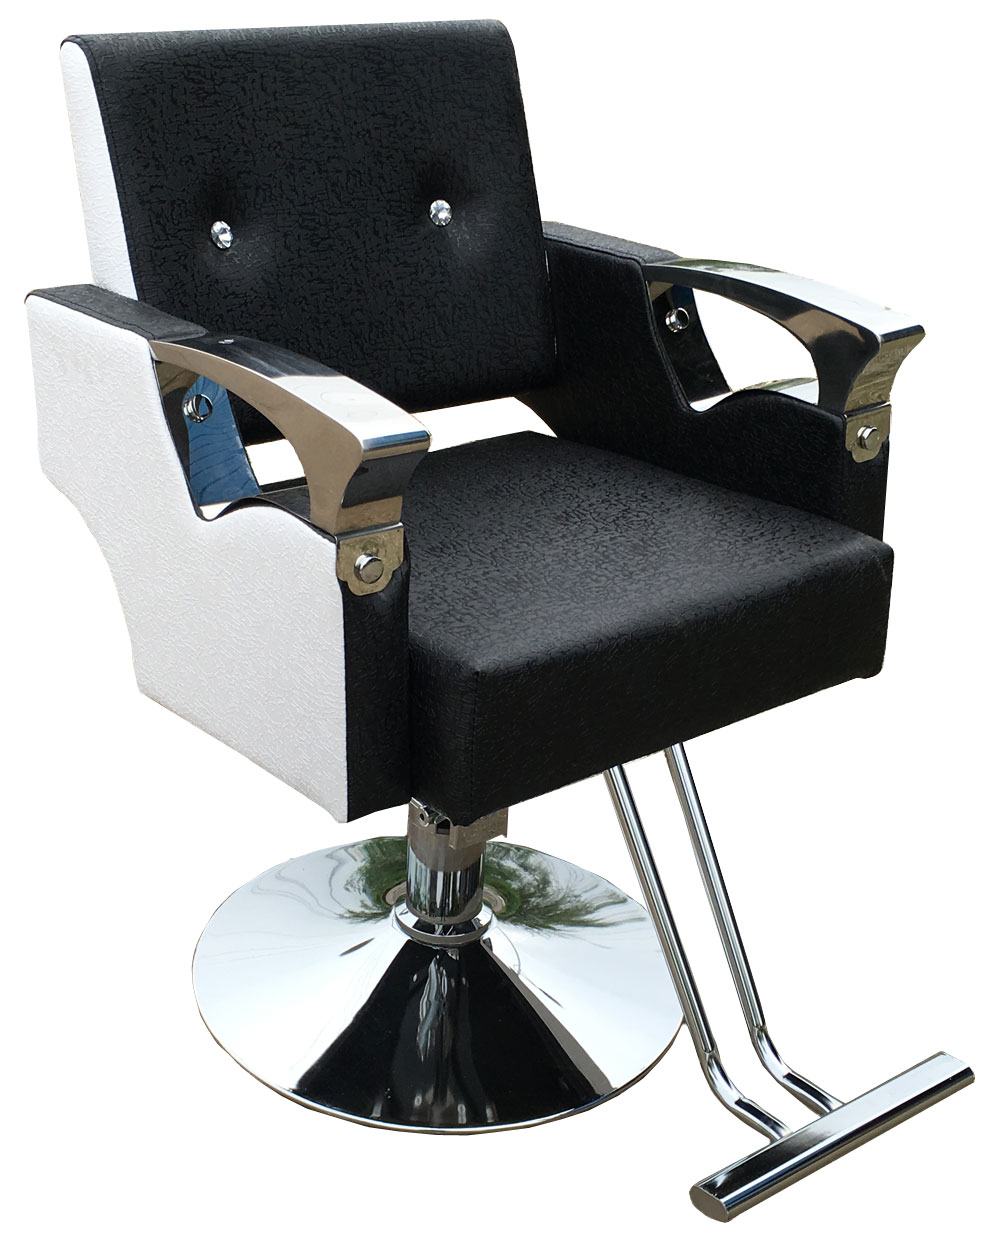 Hair salon hair hairdressing chair stainless steel for Hairdressing chairs